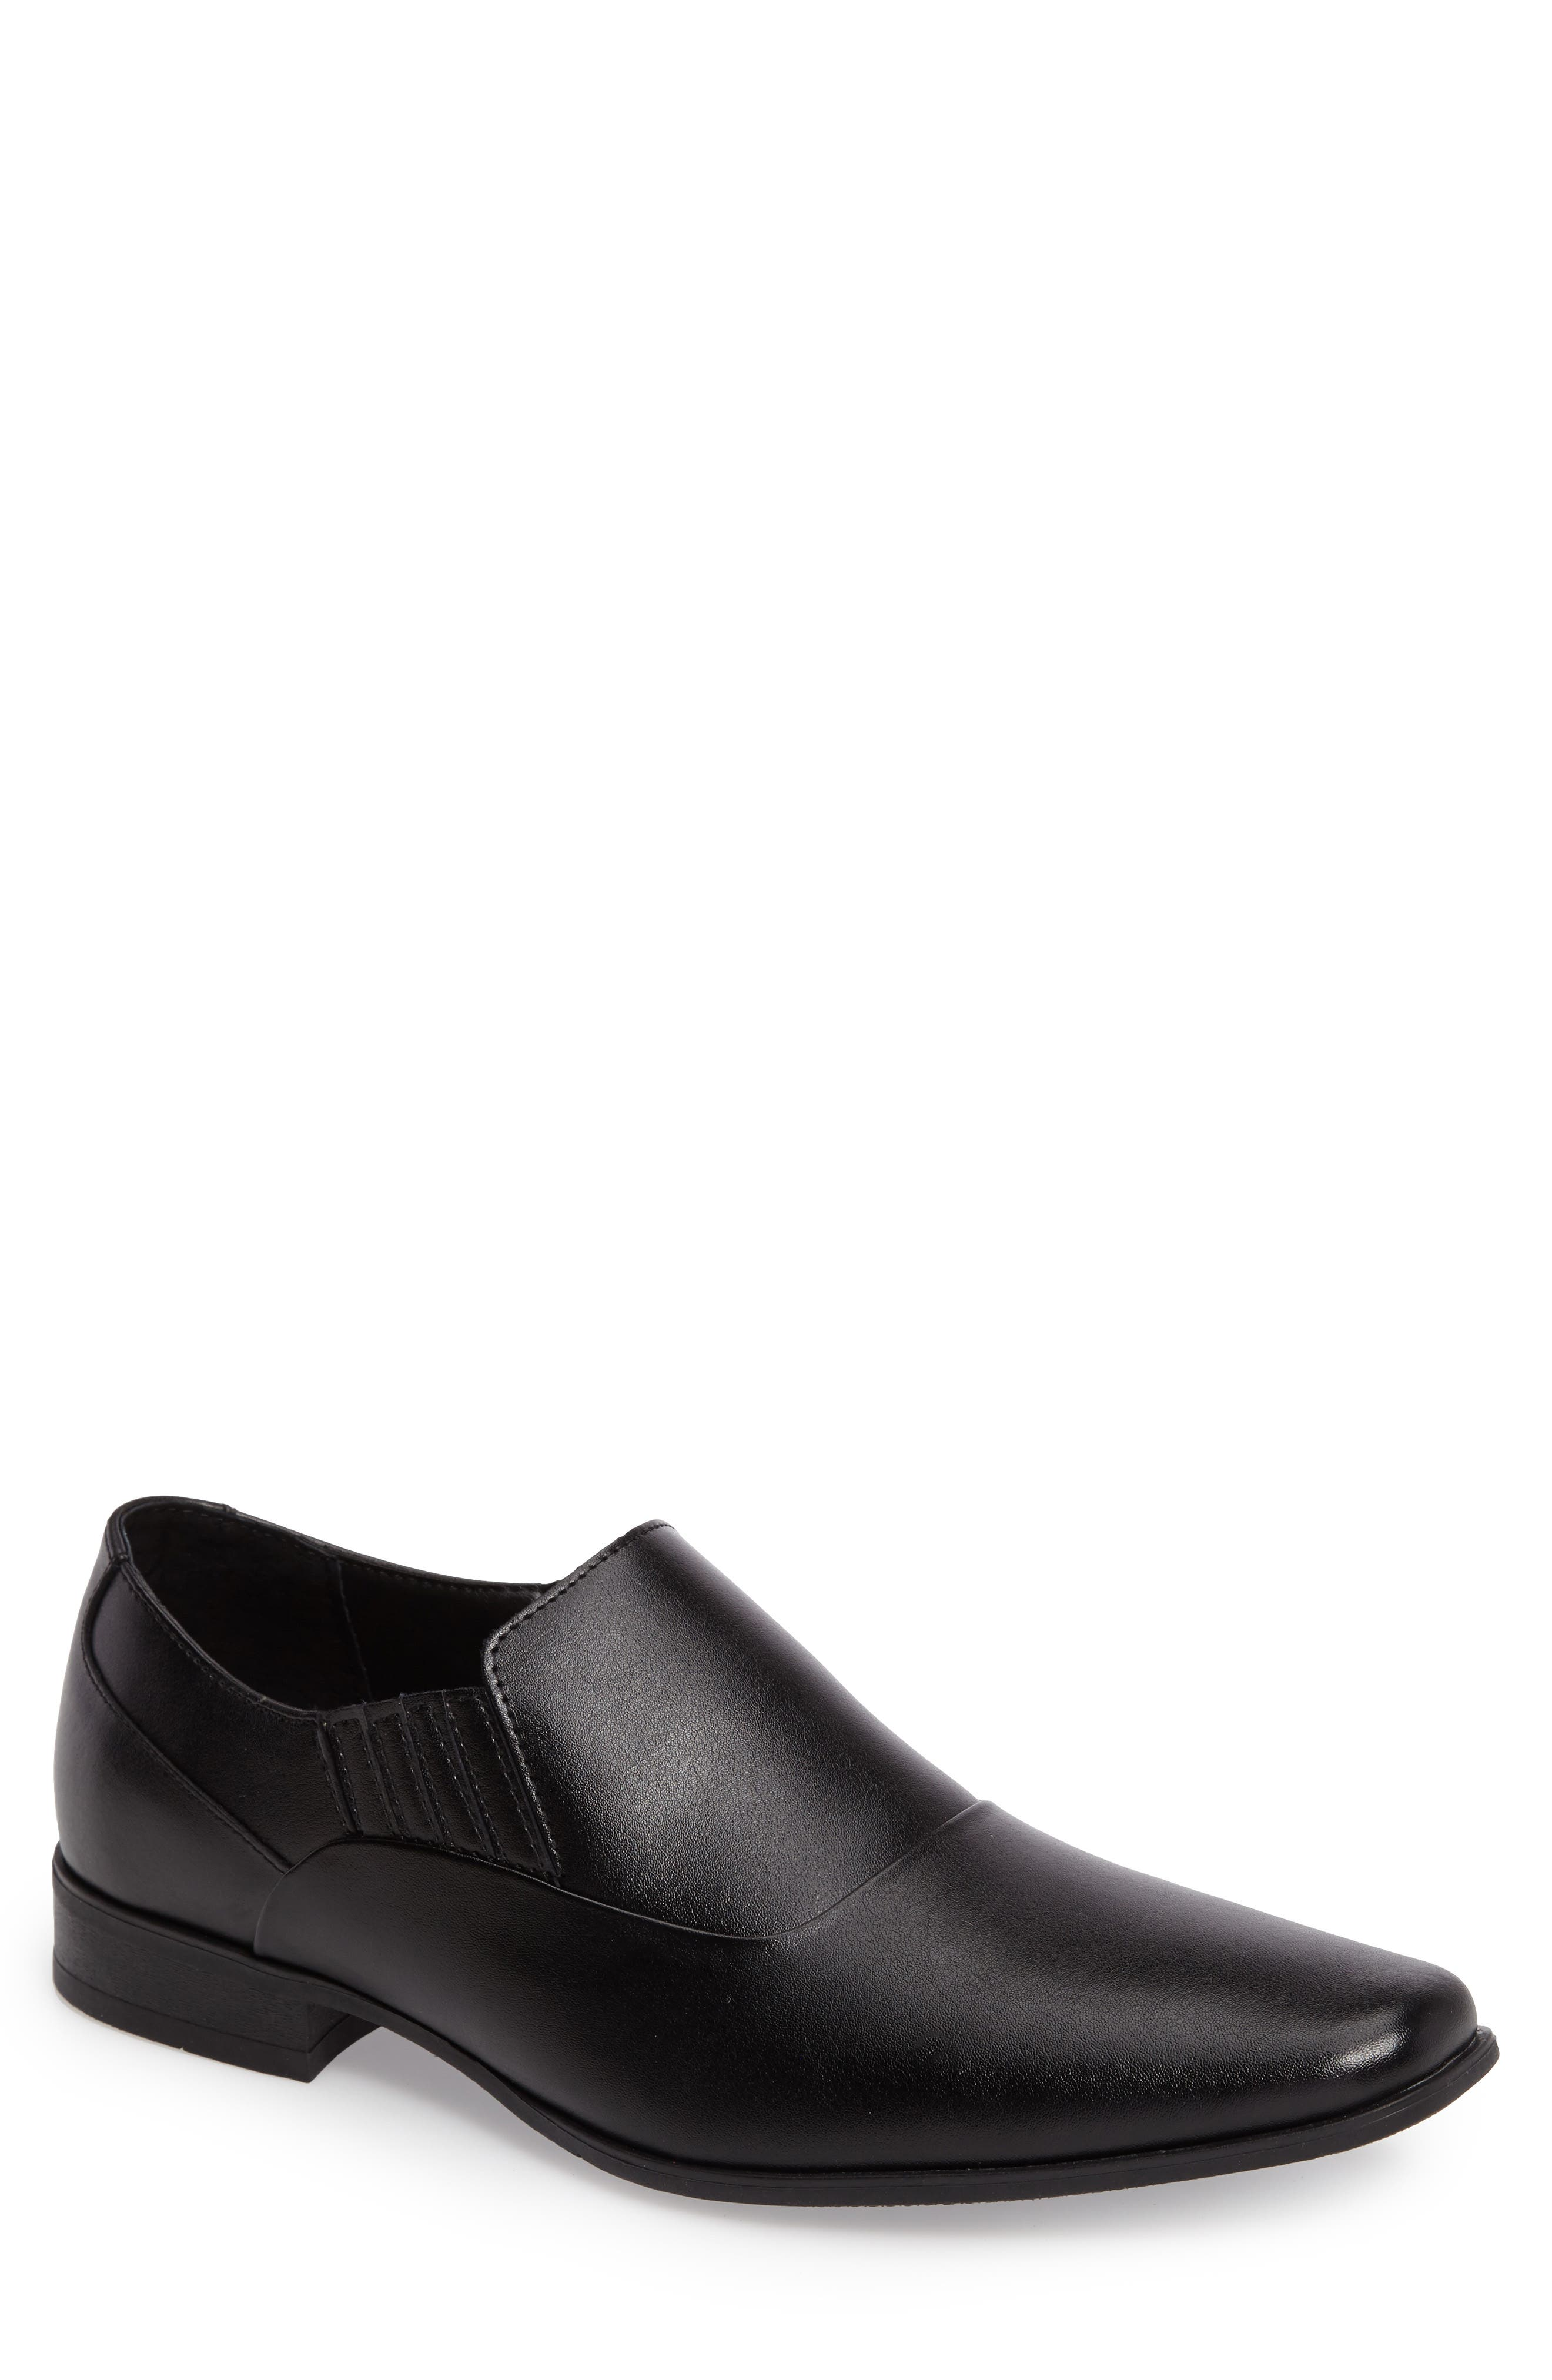 Alternate Image 1 Selected - Calvin Klein Bartel Square-Toe Venetian Loafer (Men)